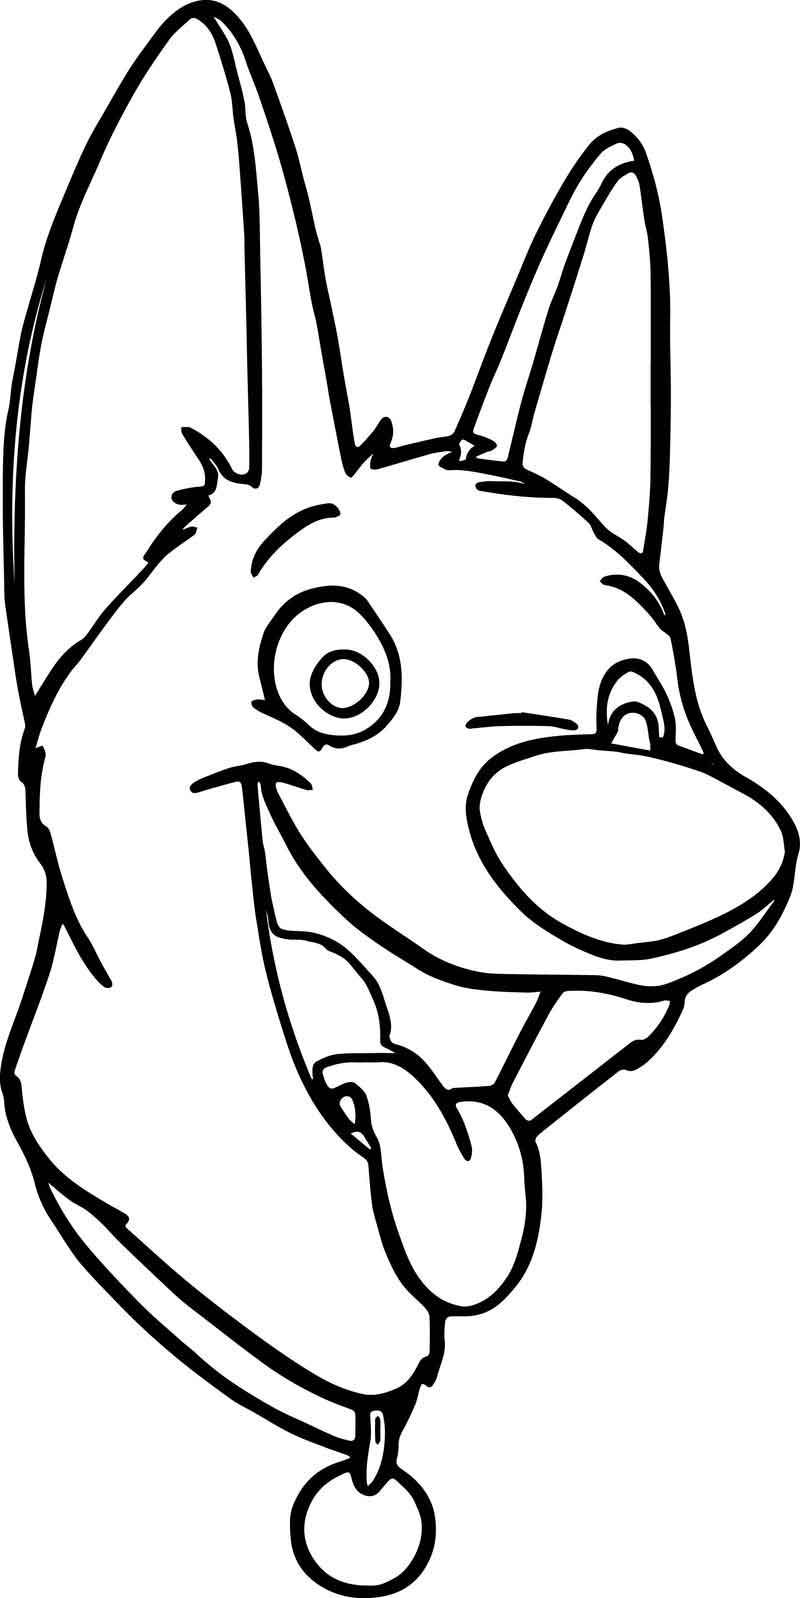 Aged And Cute Dog Coloring Pages Cute Coloring Pages Dog Coloring Page Puppy Coloring Pages Animal Coloring Pages